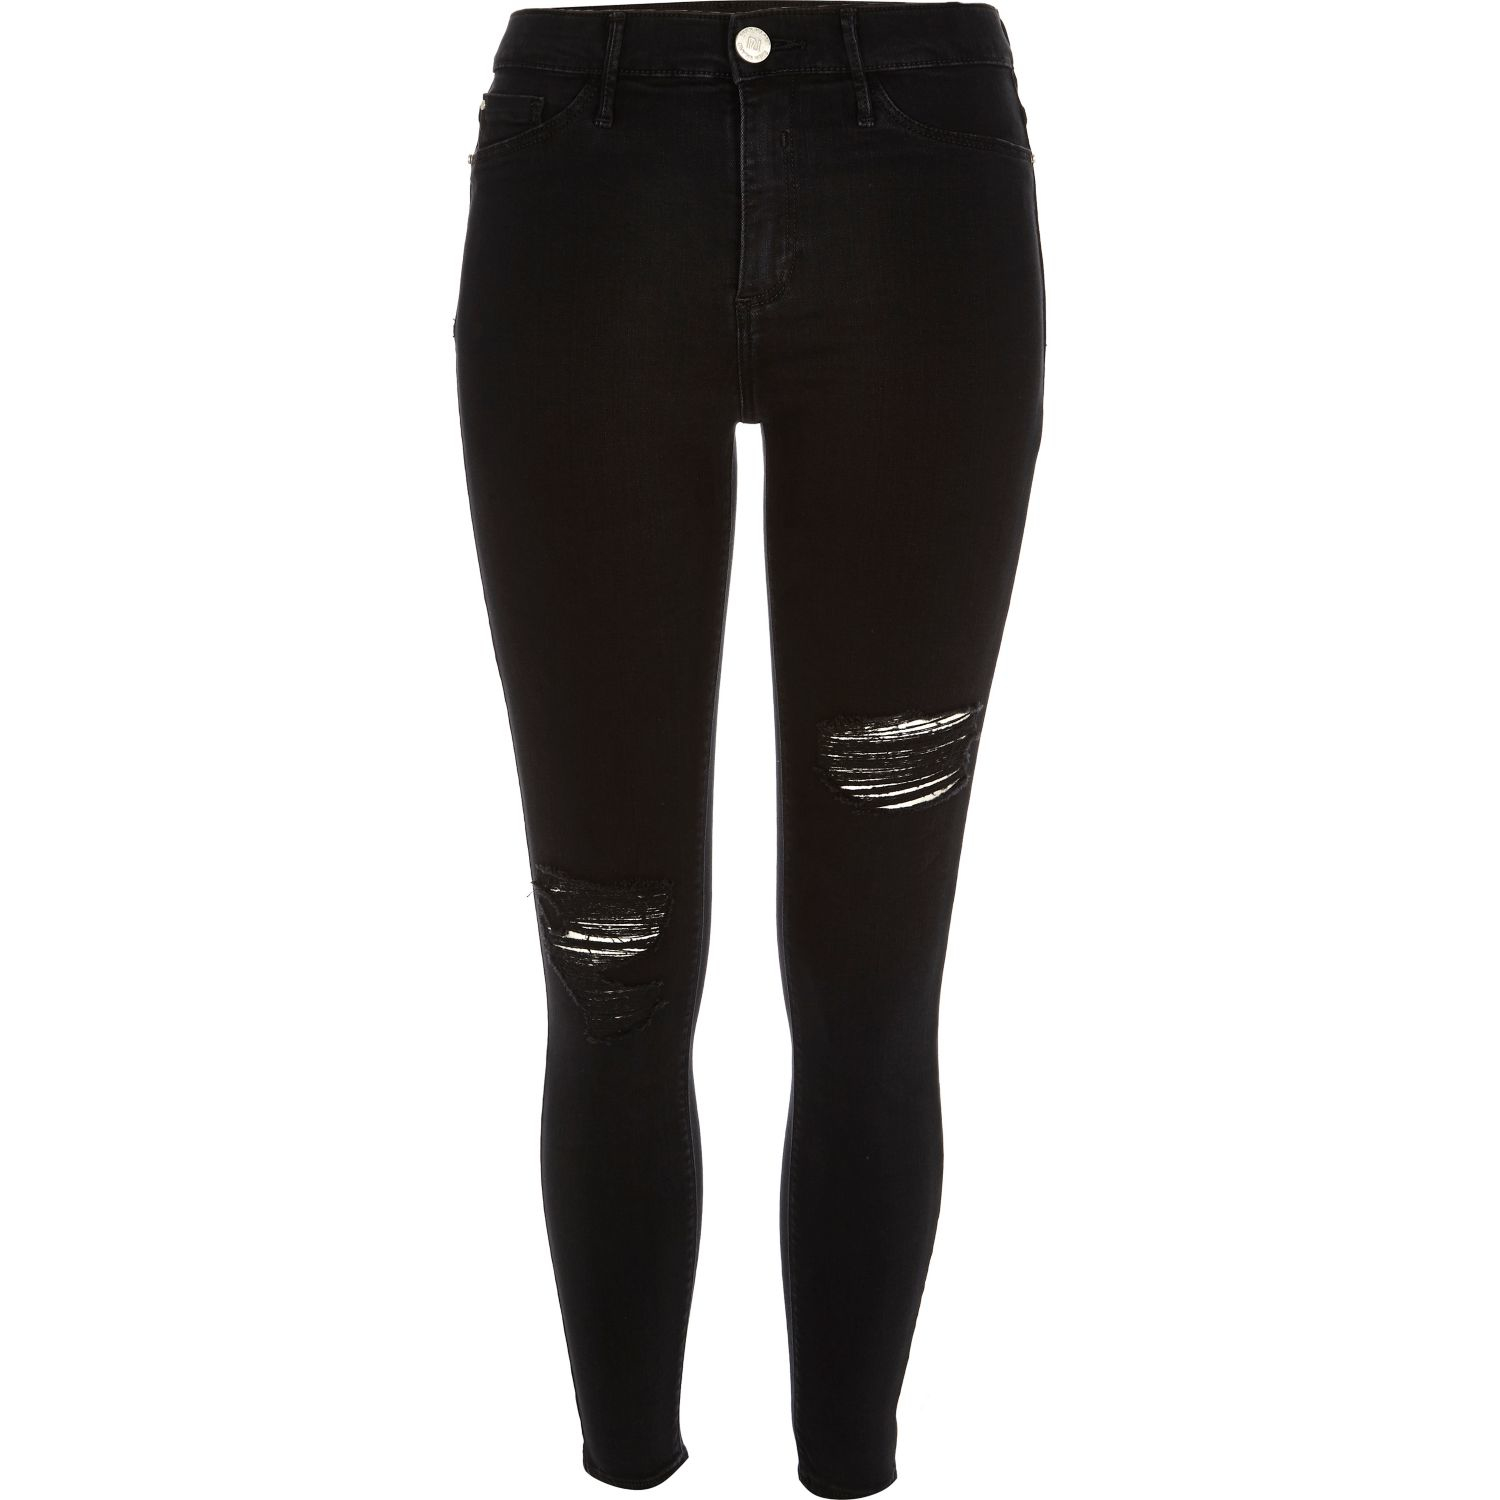 Ripped black jeans river island